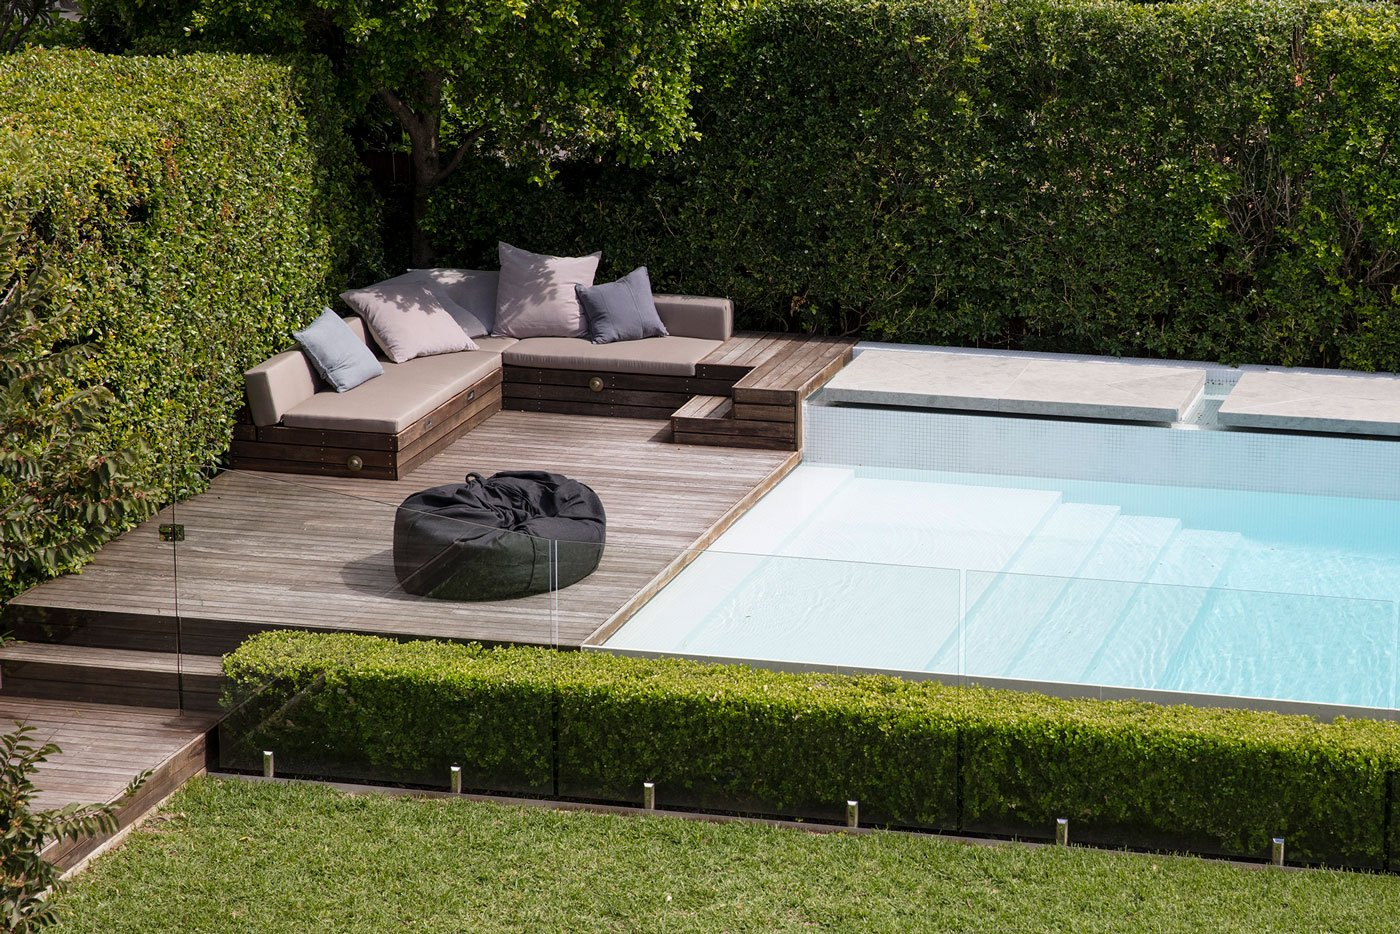 Above ground pool design surrounded by chairs and timber decking